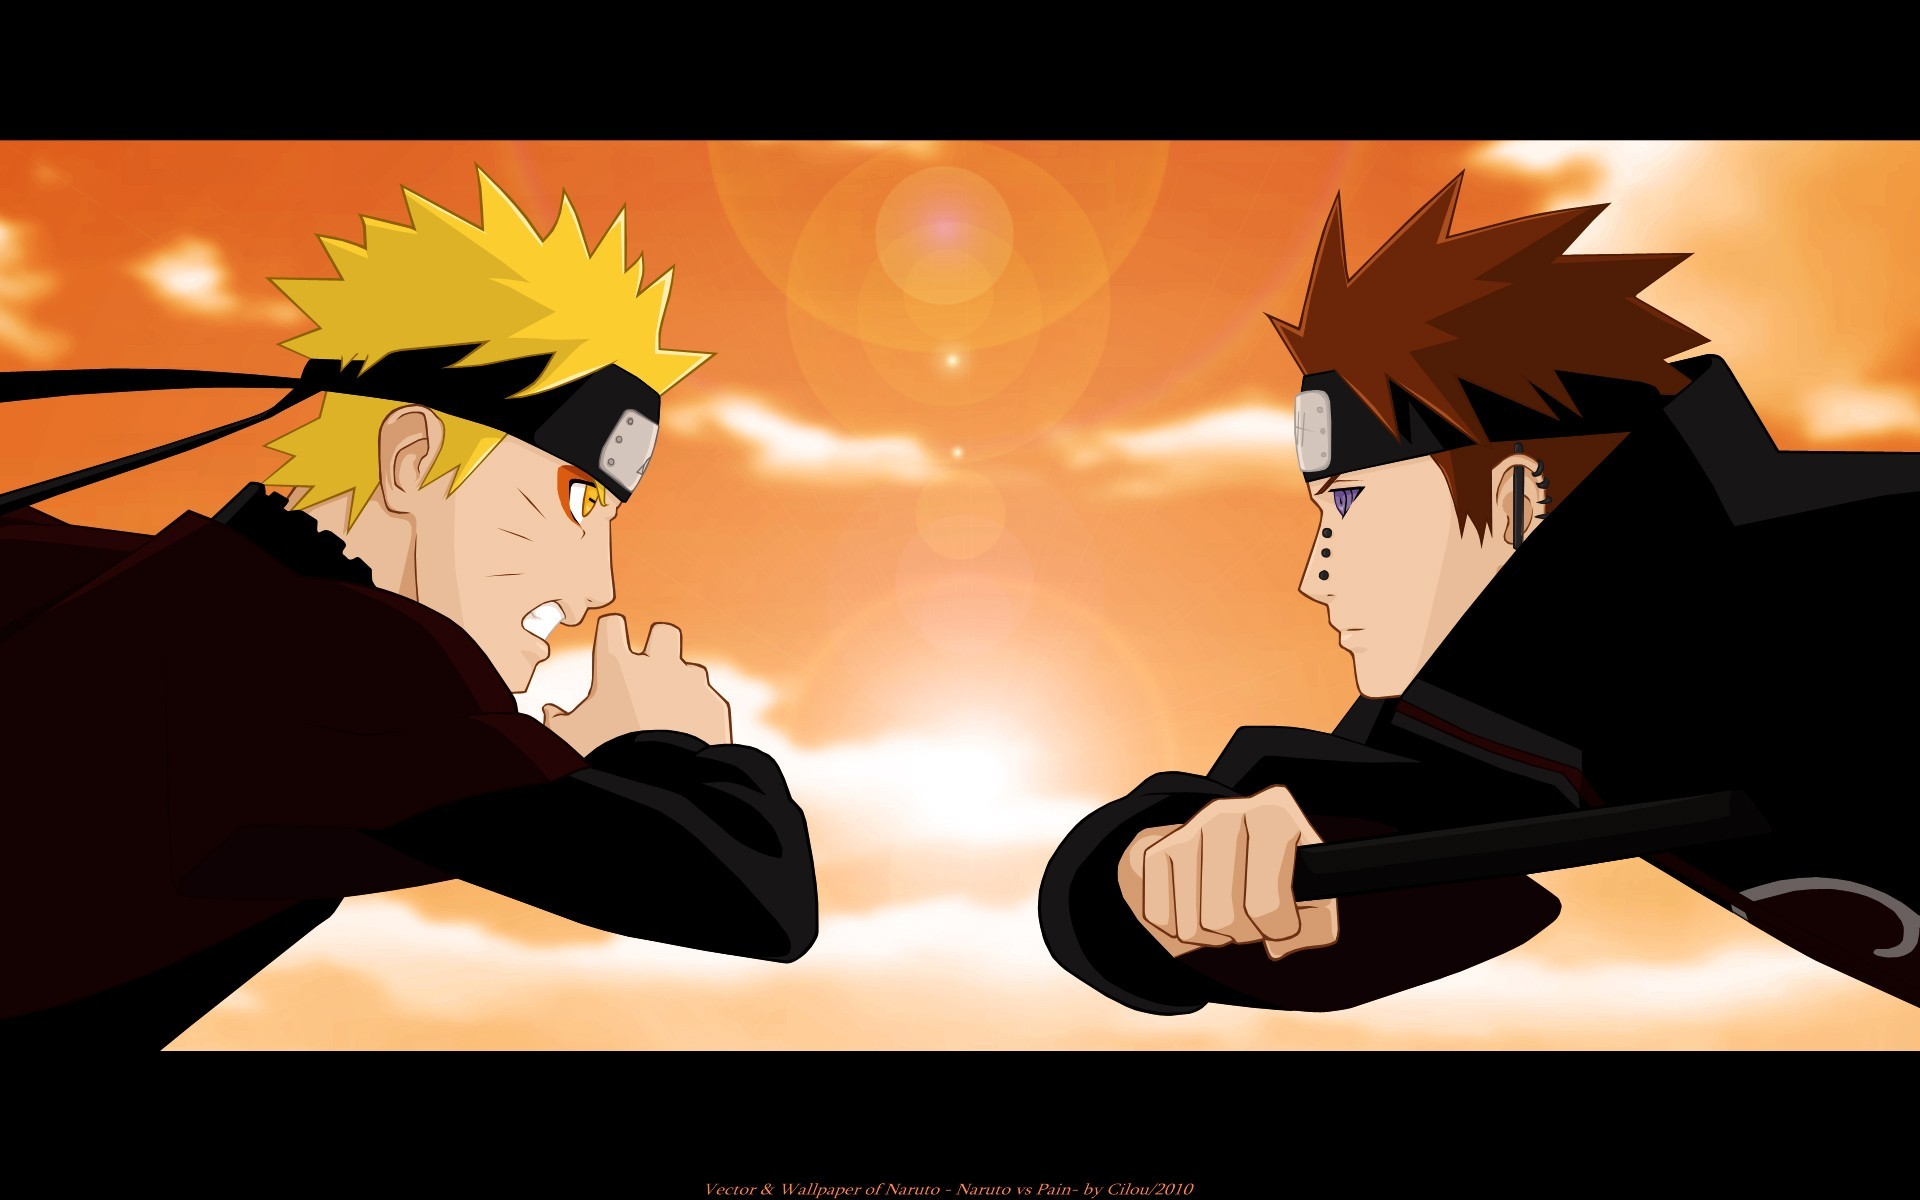 Best Wallpaper Naruto Nike - 843194-widescreen-naruto-pein-wallpaper-1920x1200-for-android  Photograph_40911.jpg